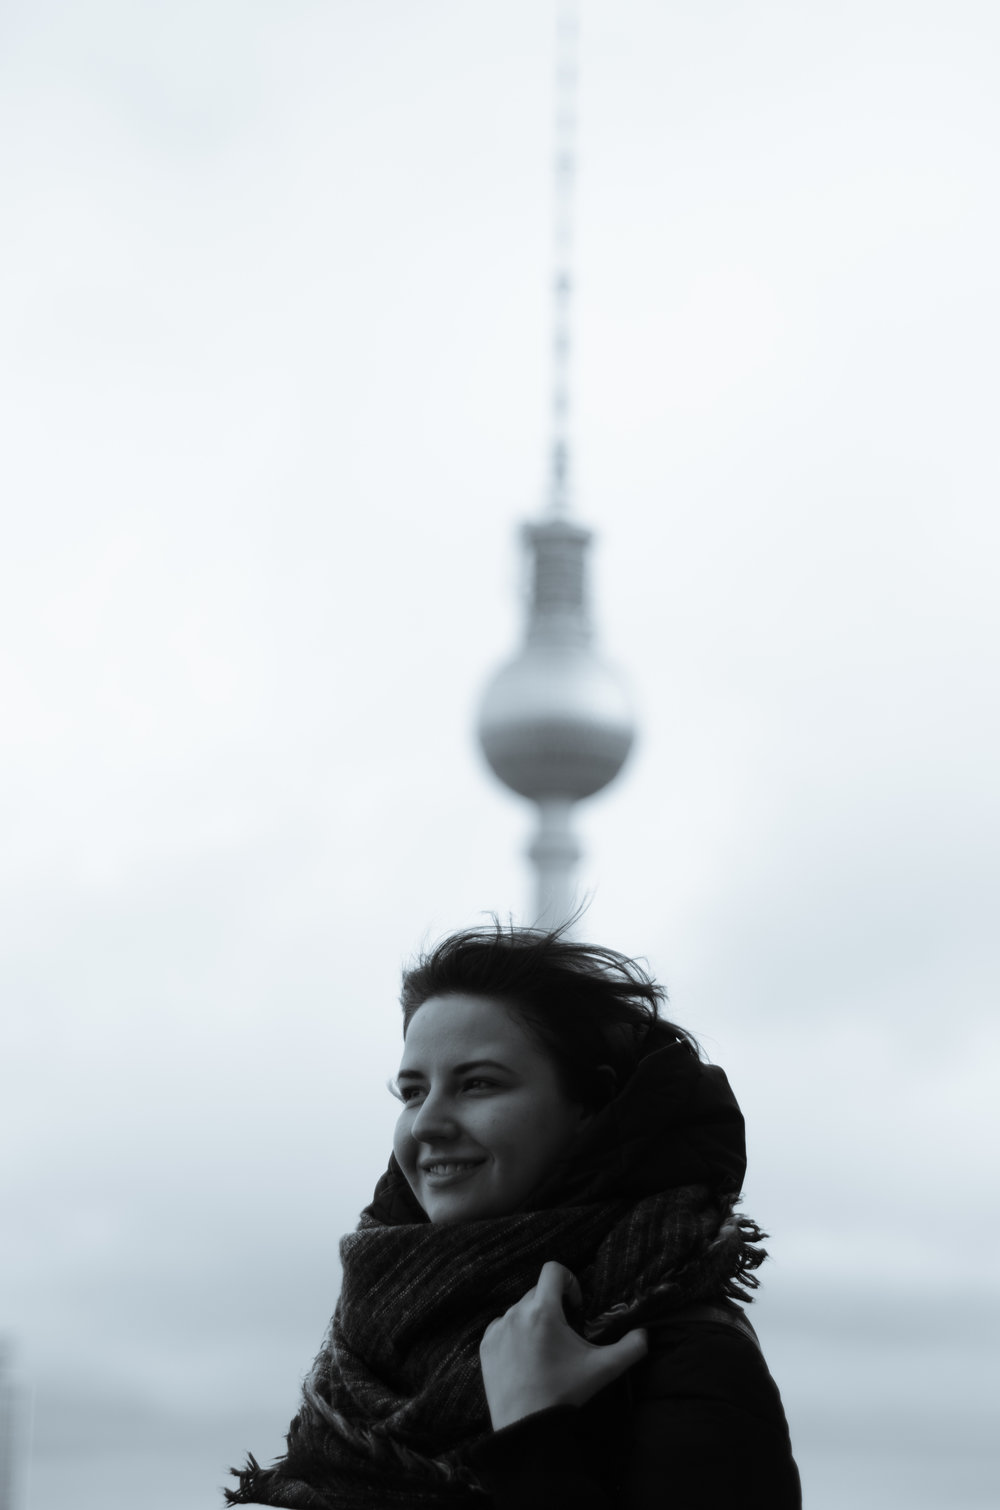 Anya is enjoying the view from the top of the Berlin Dome. Berlin TV tower in the background.